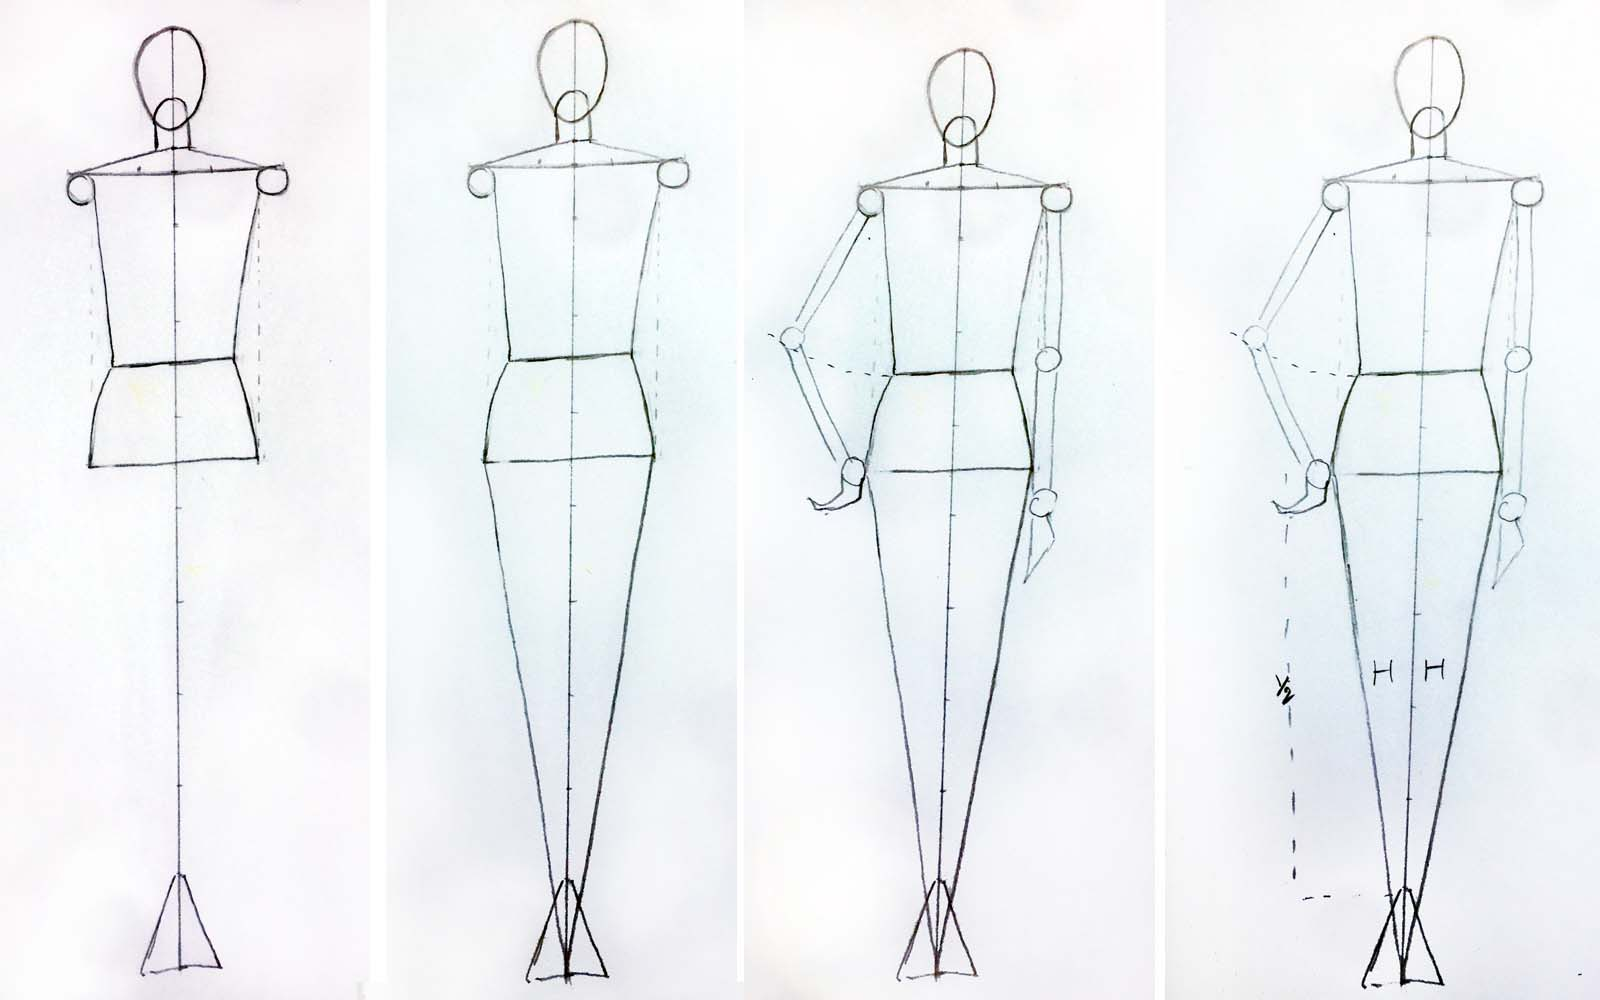 Learn how to draw fashion design Learn how to draw fashion sketches with Ioana Avram